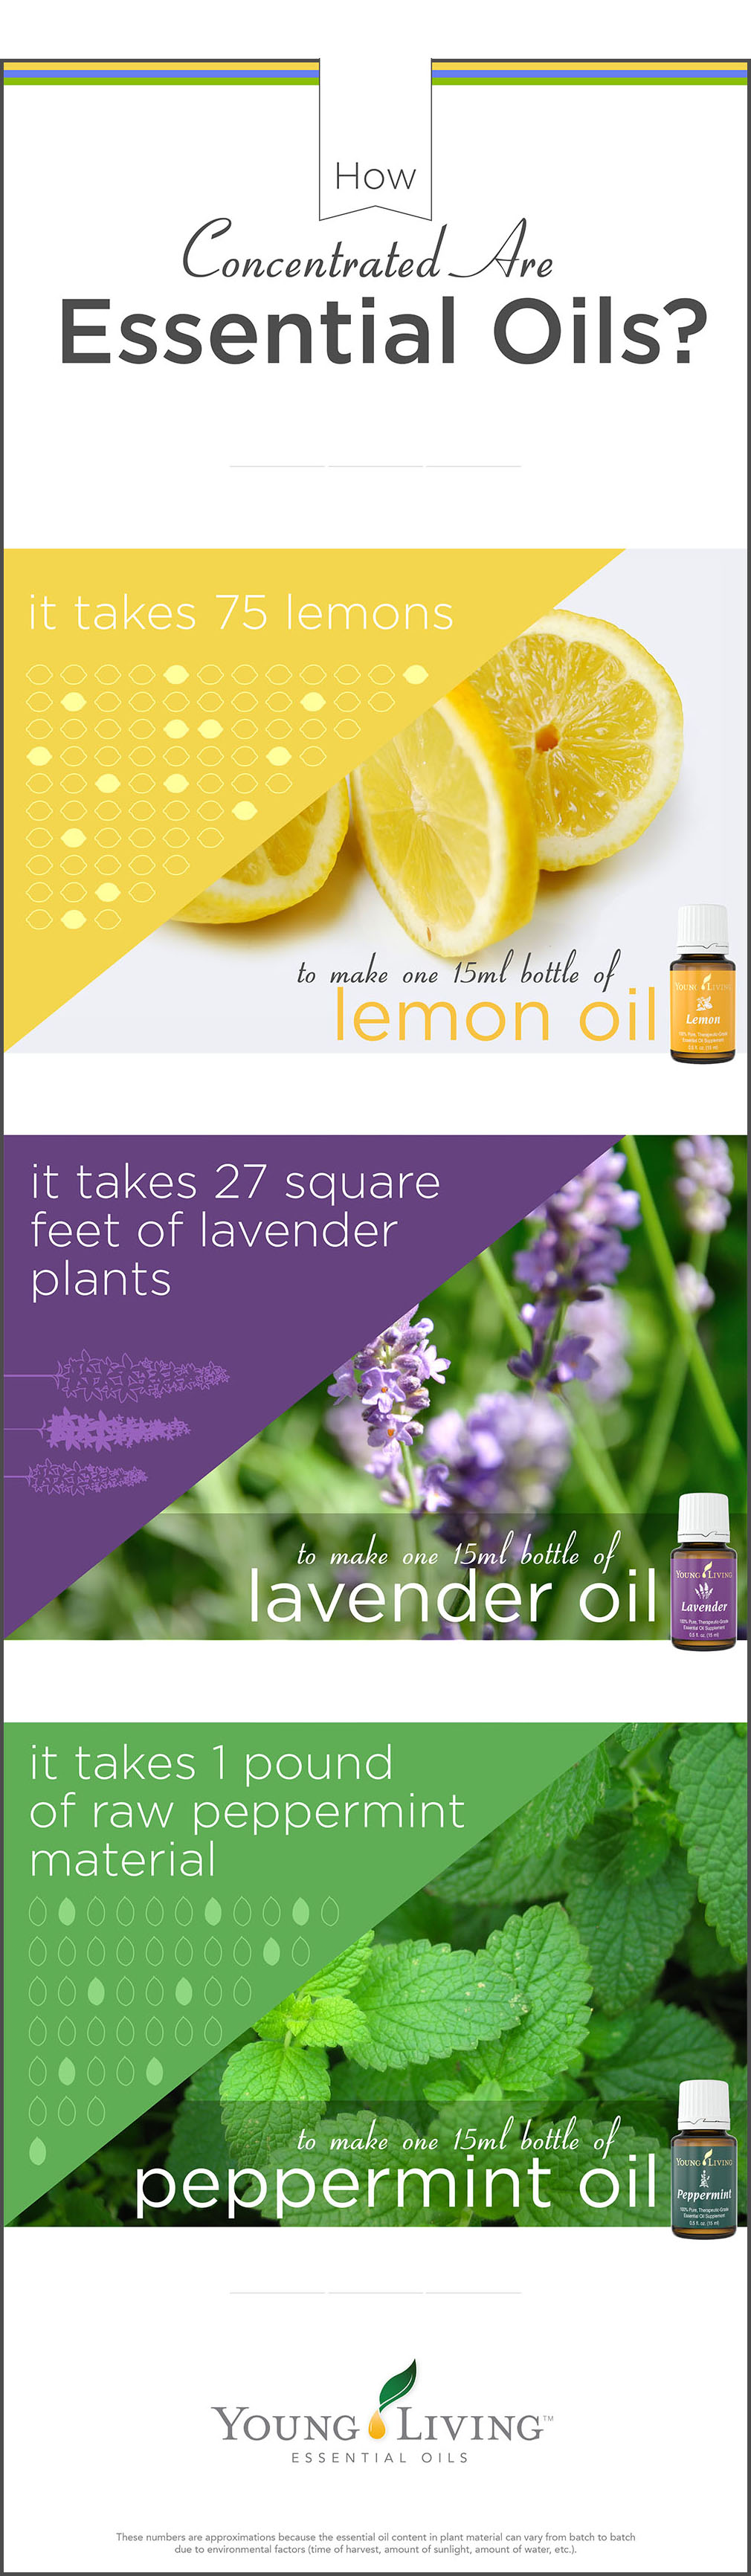 what is in an essential oil